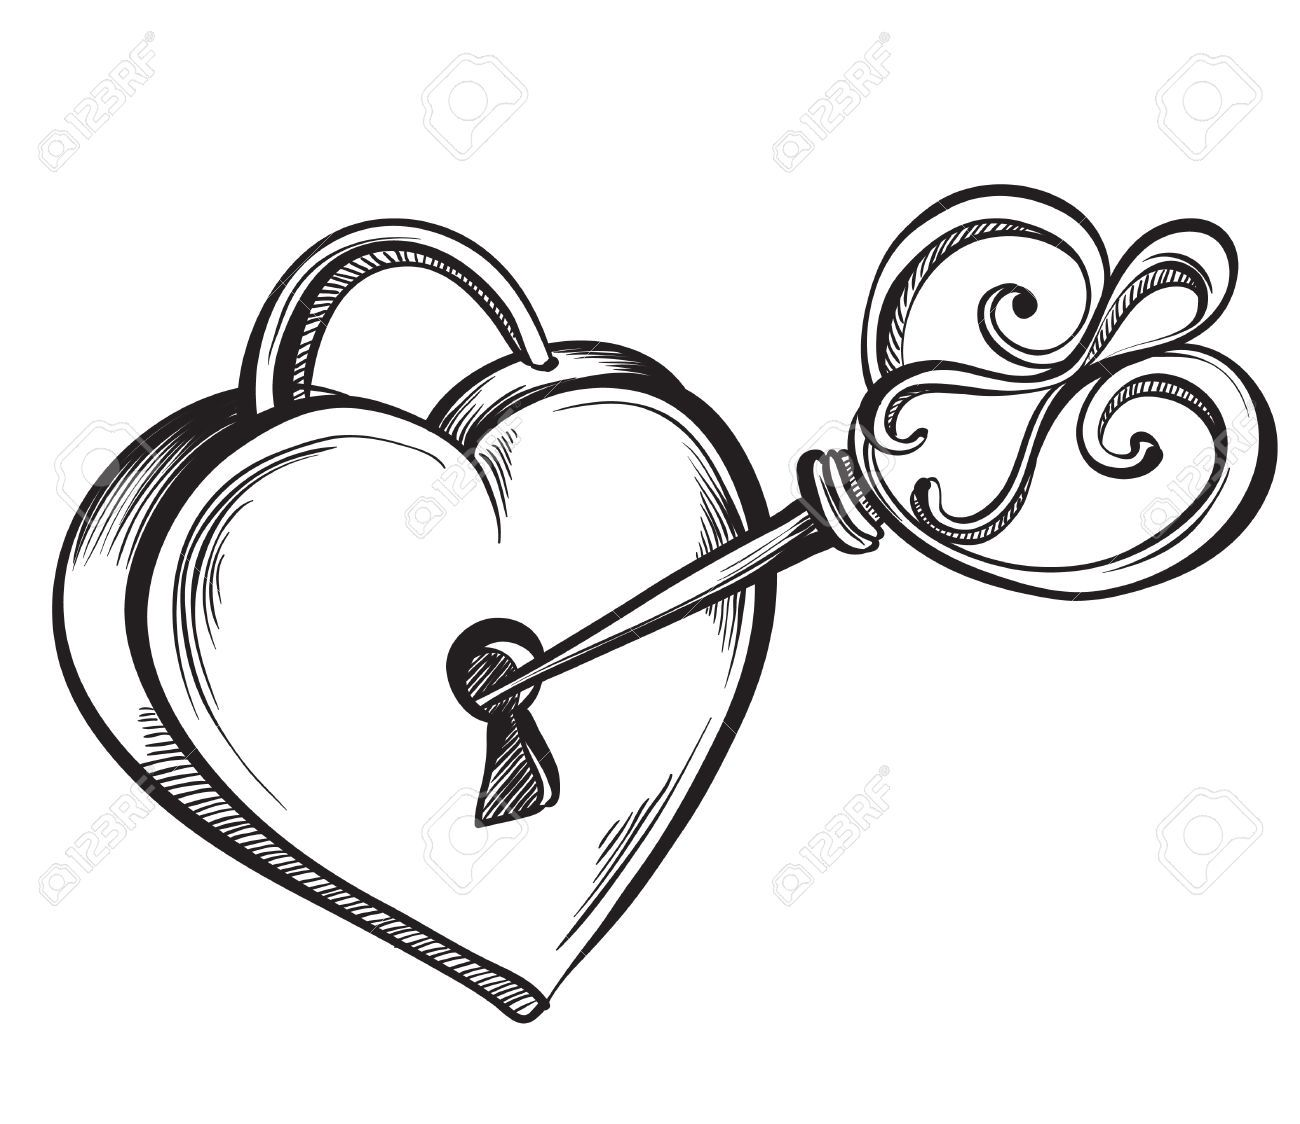 1300x1124 Collection Of Lock And Key Clipart Black And White High